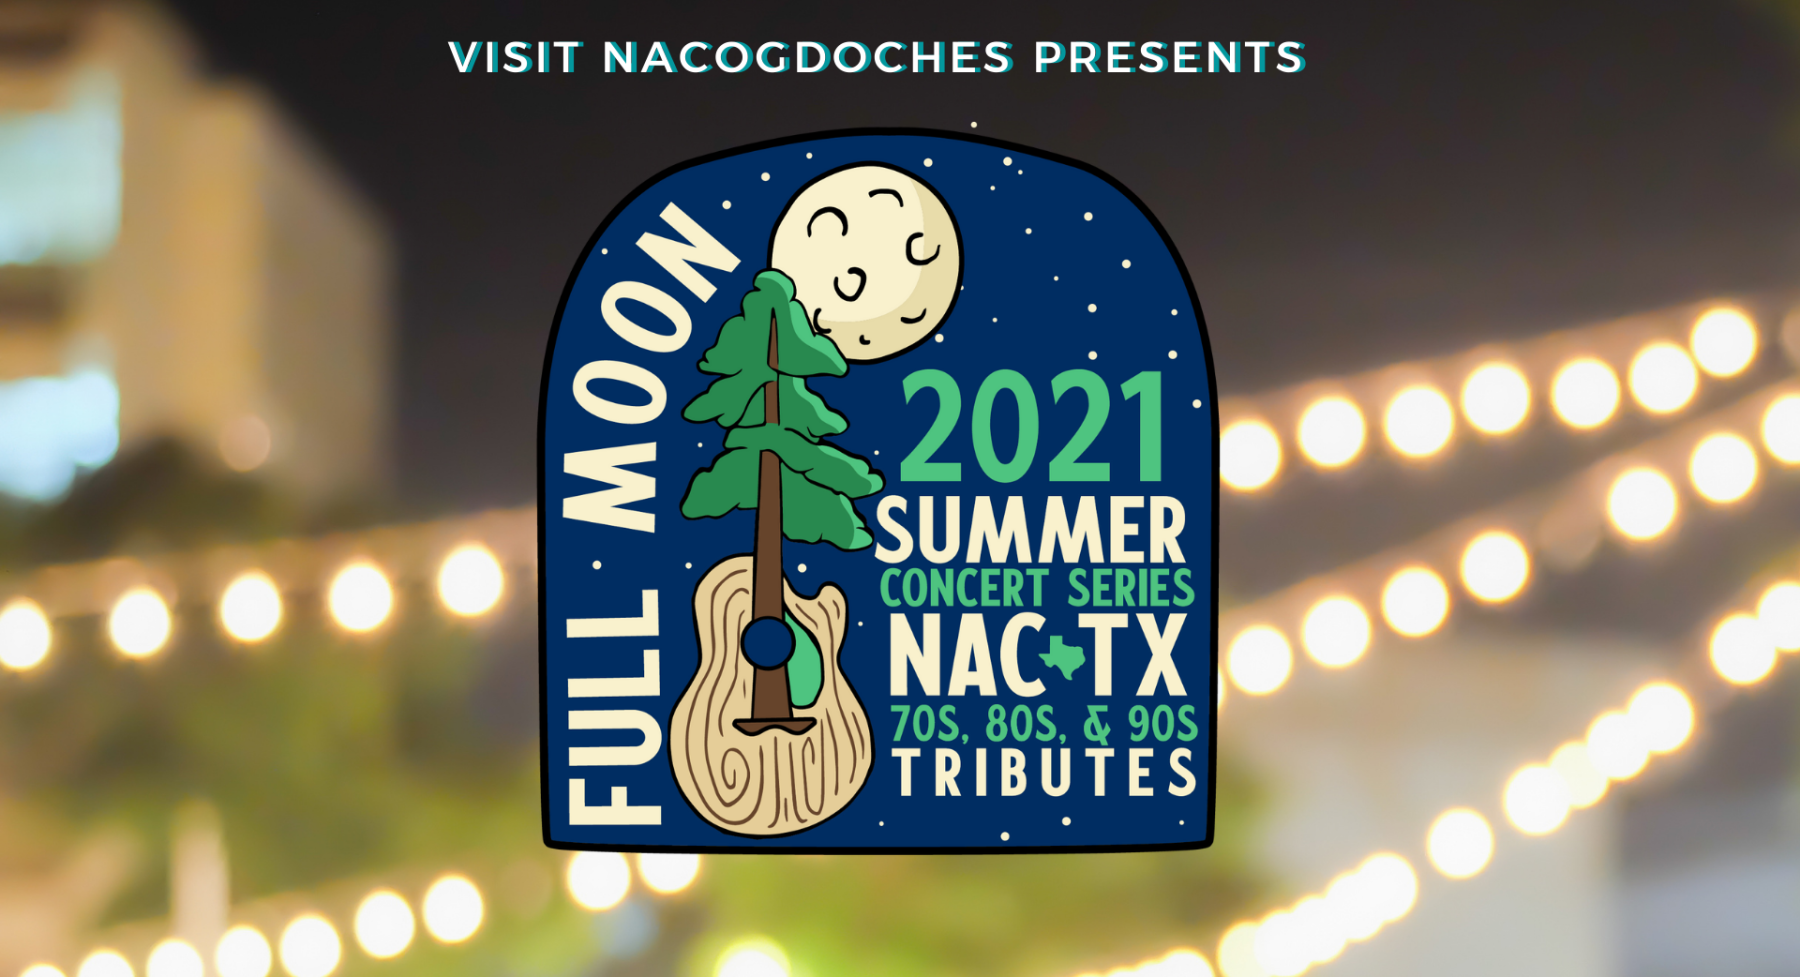 Visit Nacogdoches Presents Full Moon Concert Series Summer 2021